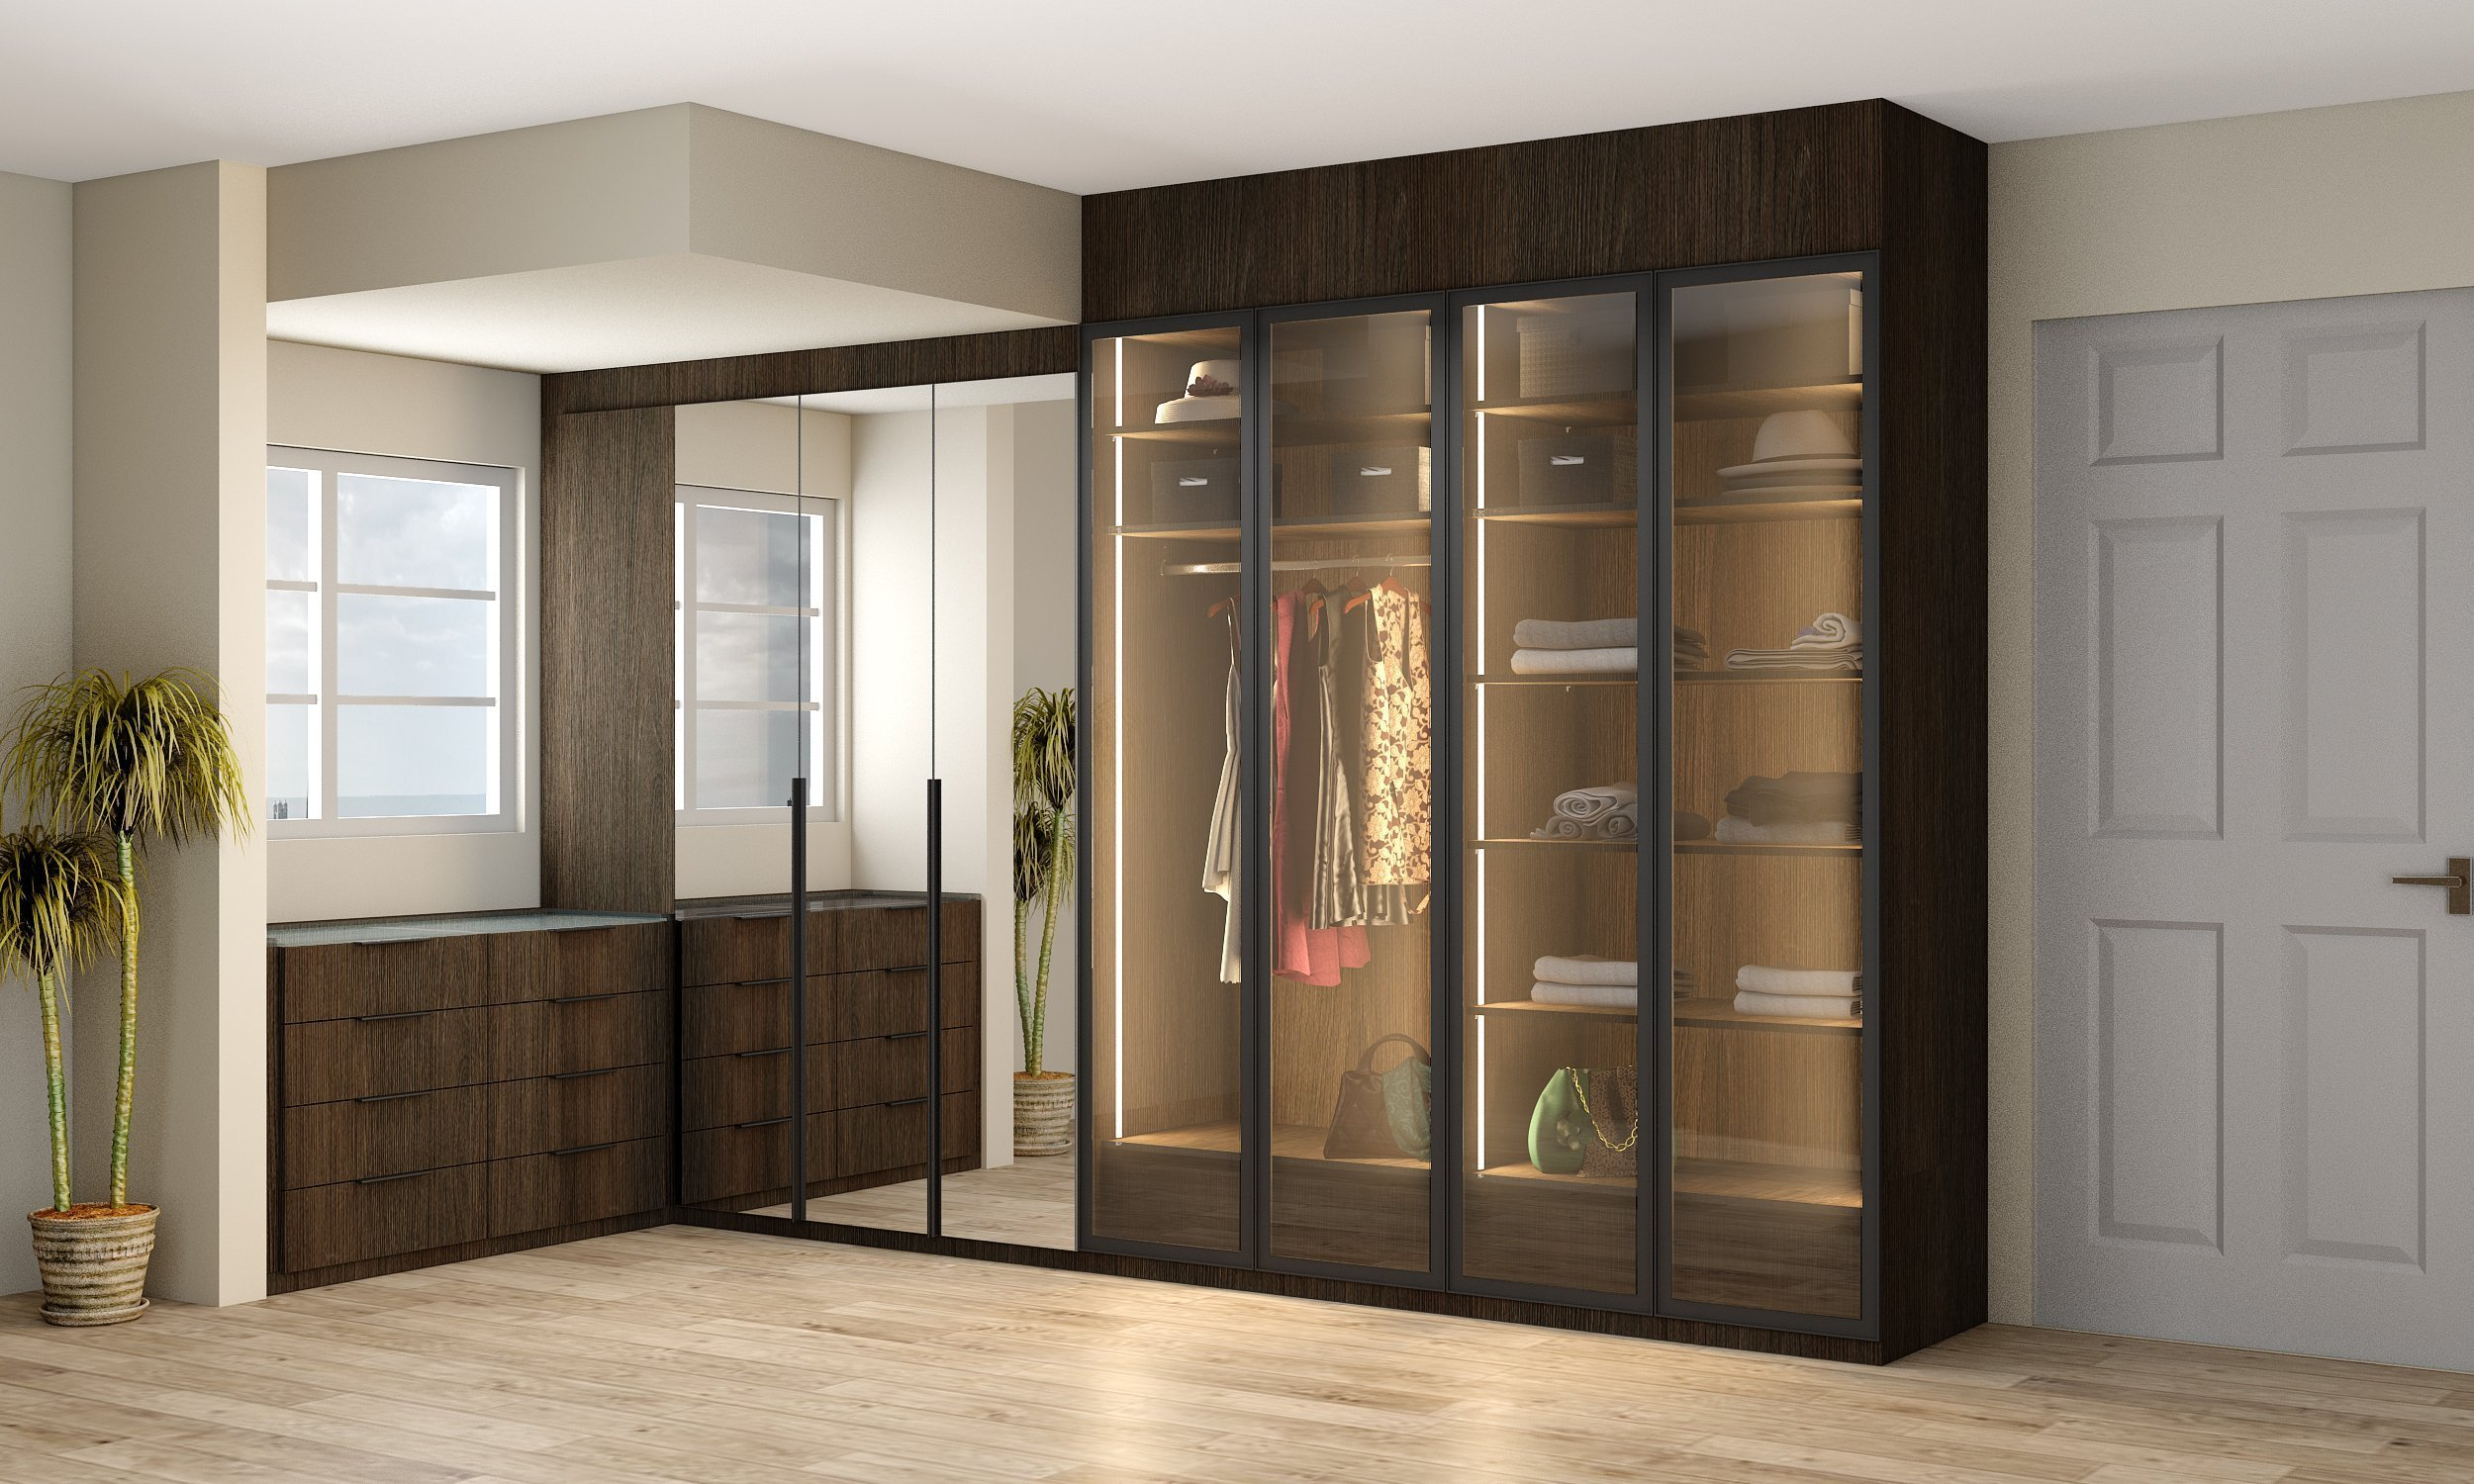 Small Linear Glass Wardrobe in Dark Wood Oak Finish With Chest of Drawers